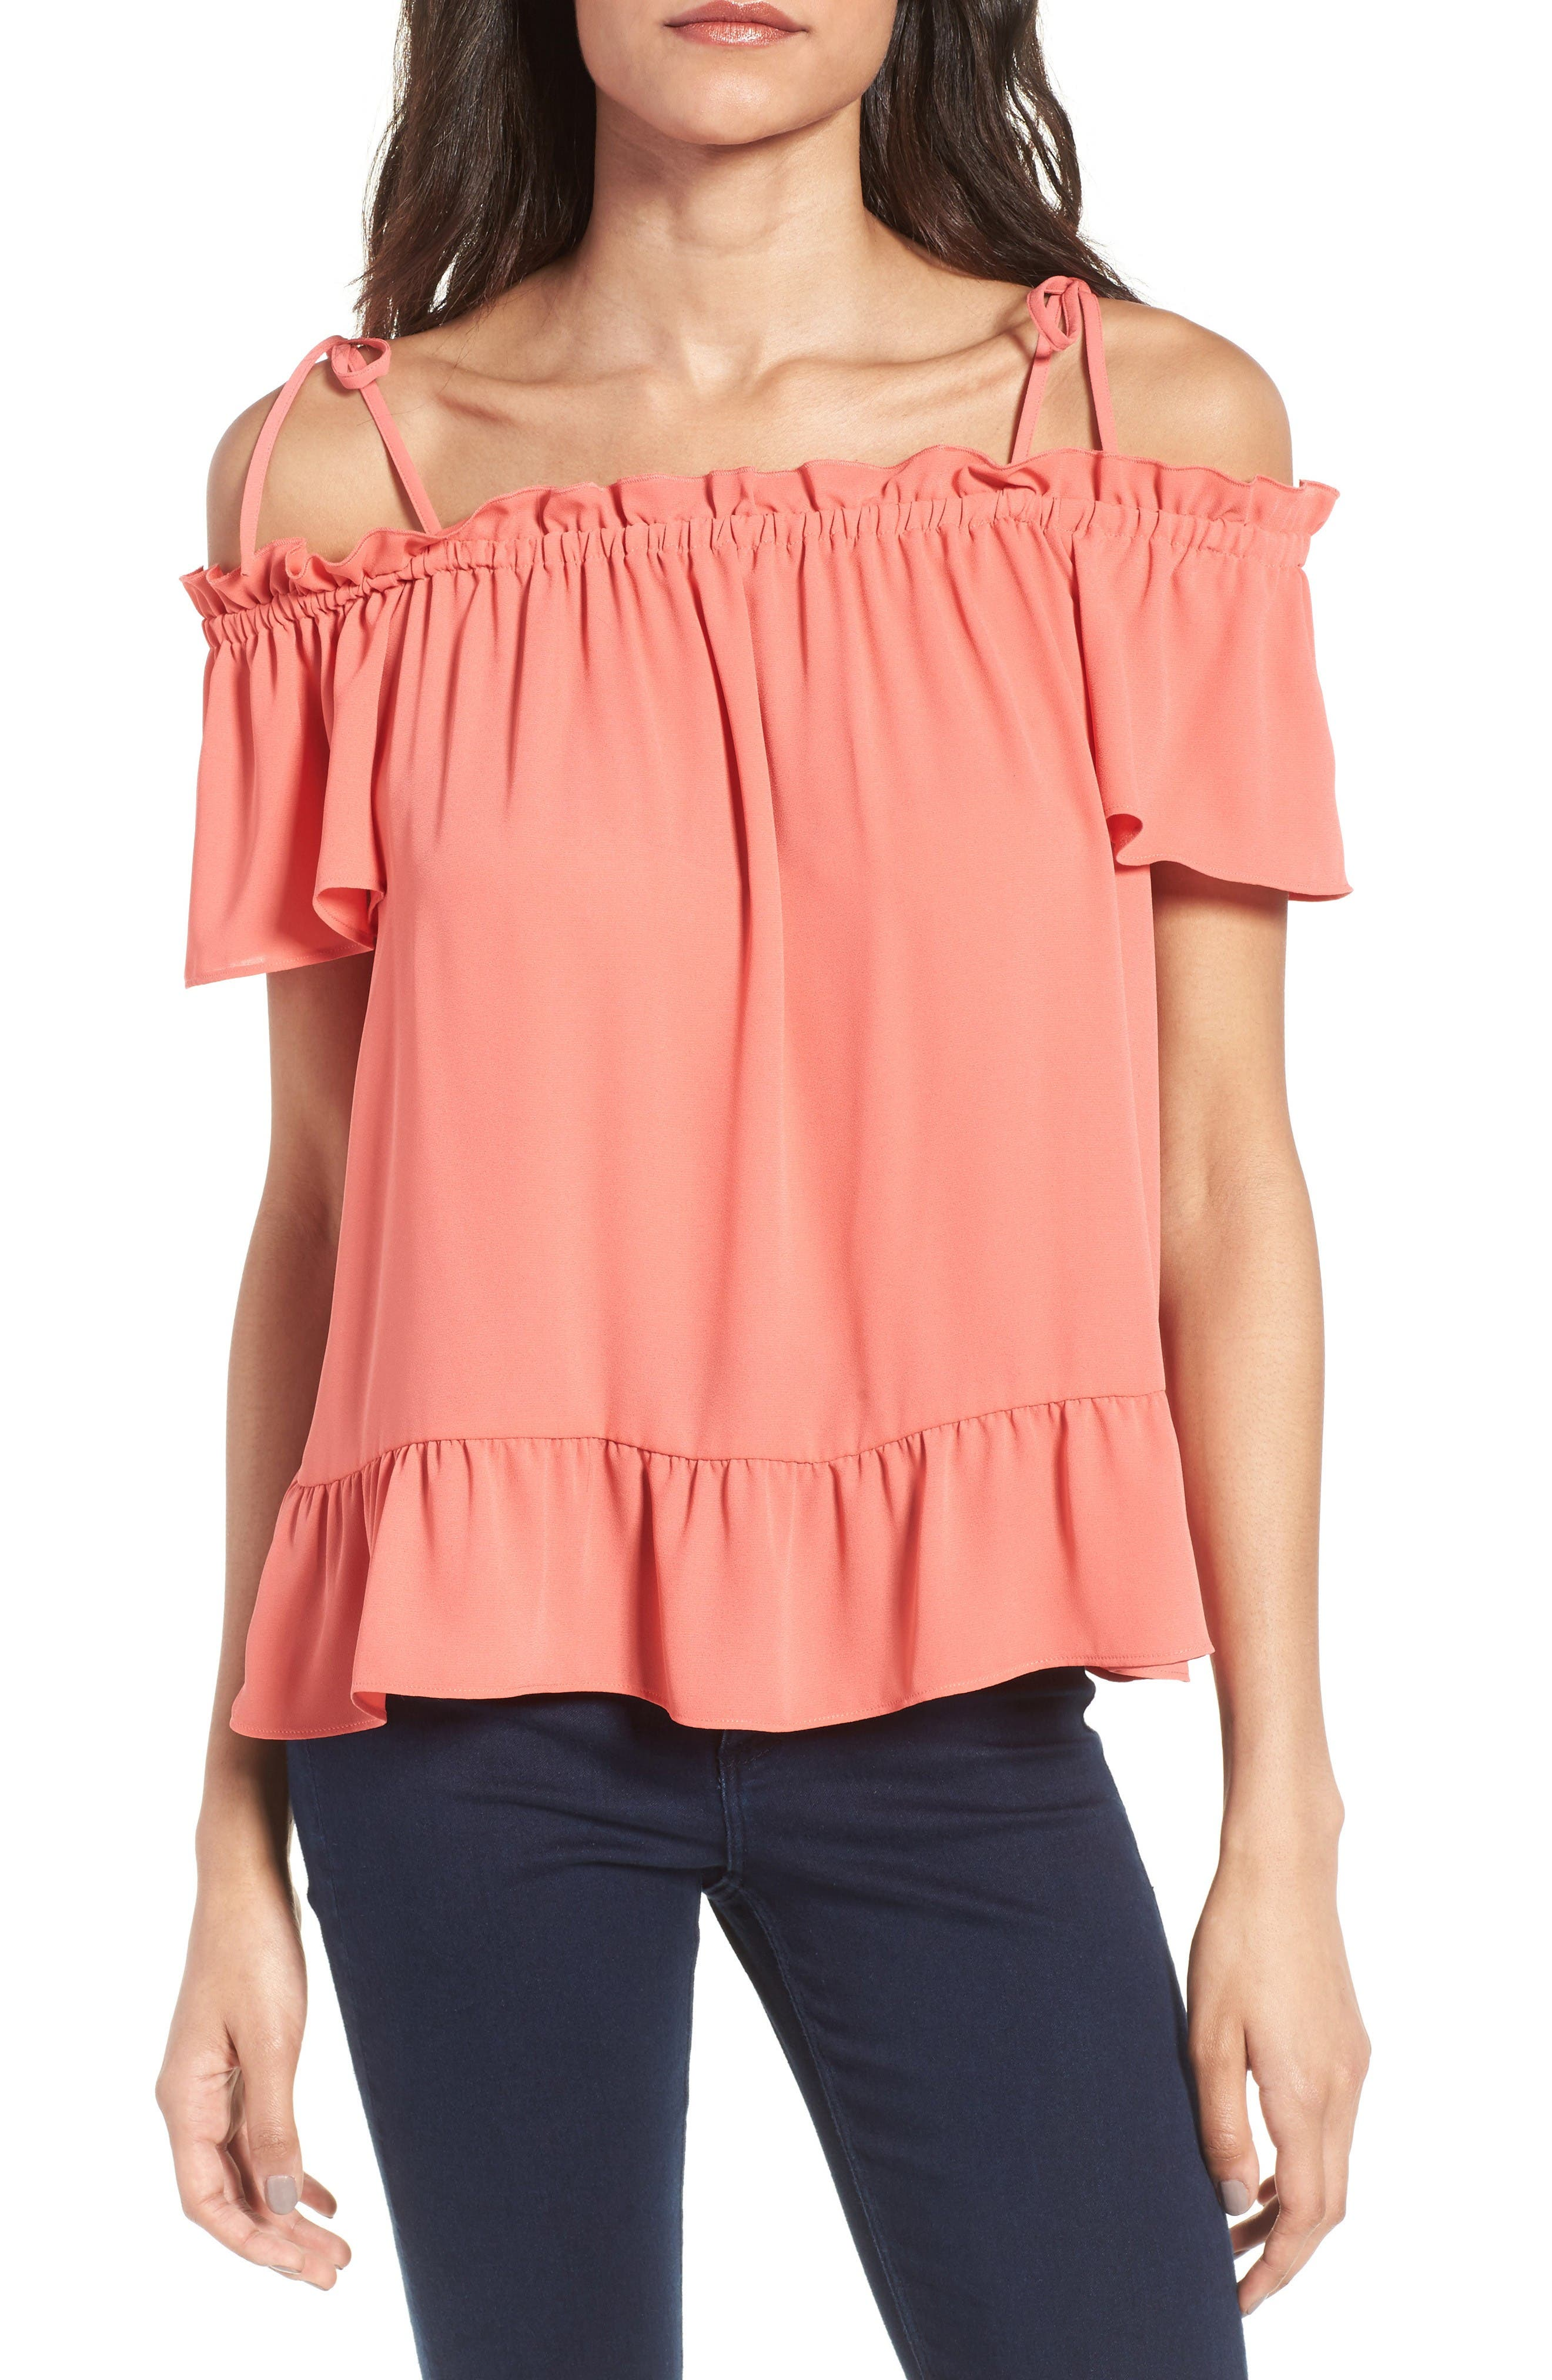 Main Image - Chelsea28 Ruffle Off the Shoulder Top